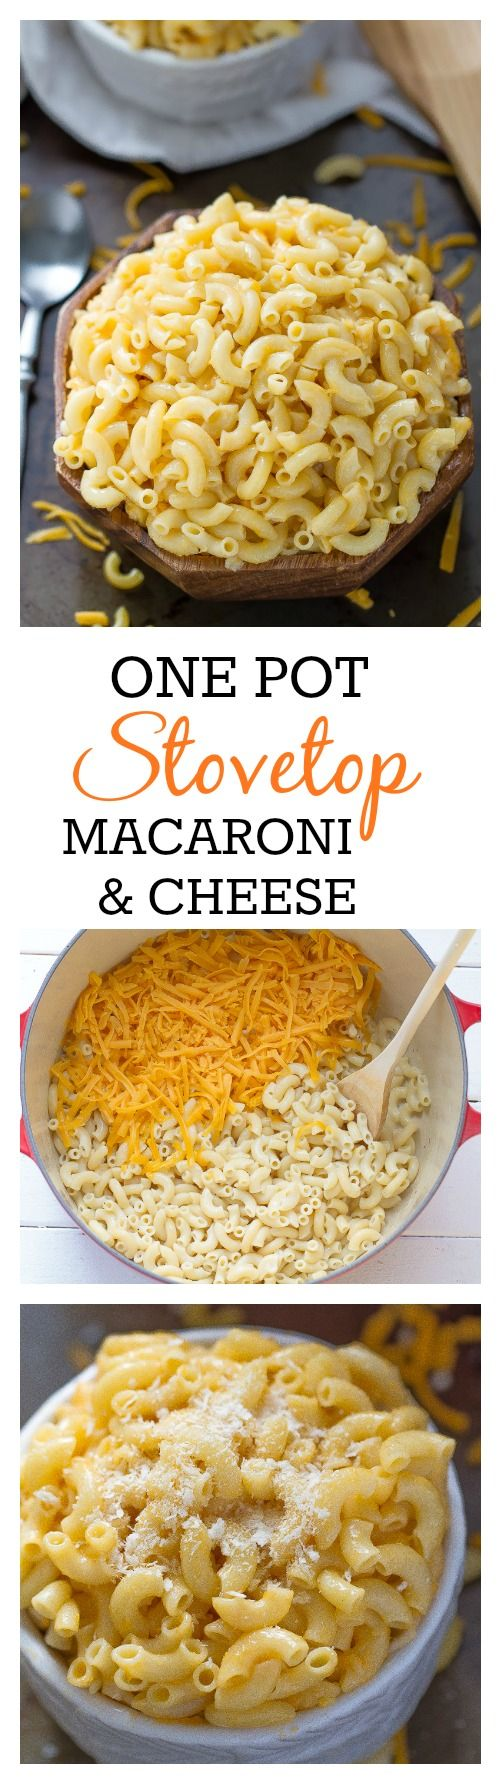 ... Stovetop Creamy Macaroni and Cheese | Recipe | Dishes, Mac cheese and